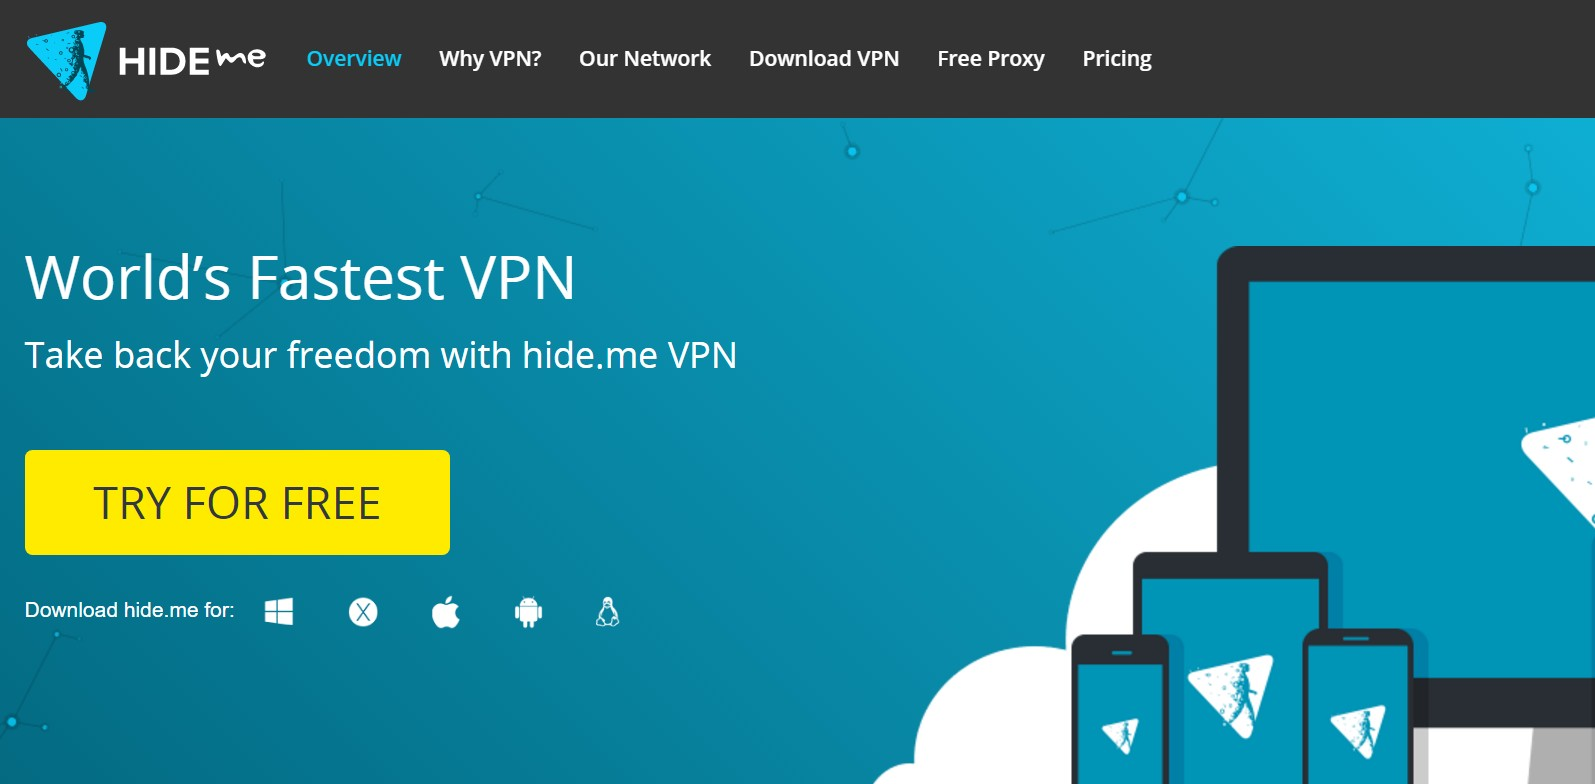 Hide.me home page - Best VPN no logs